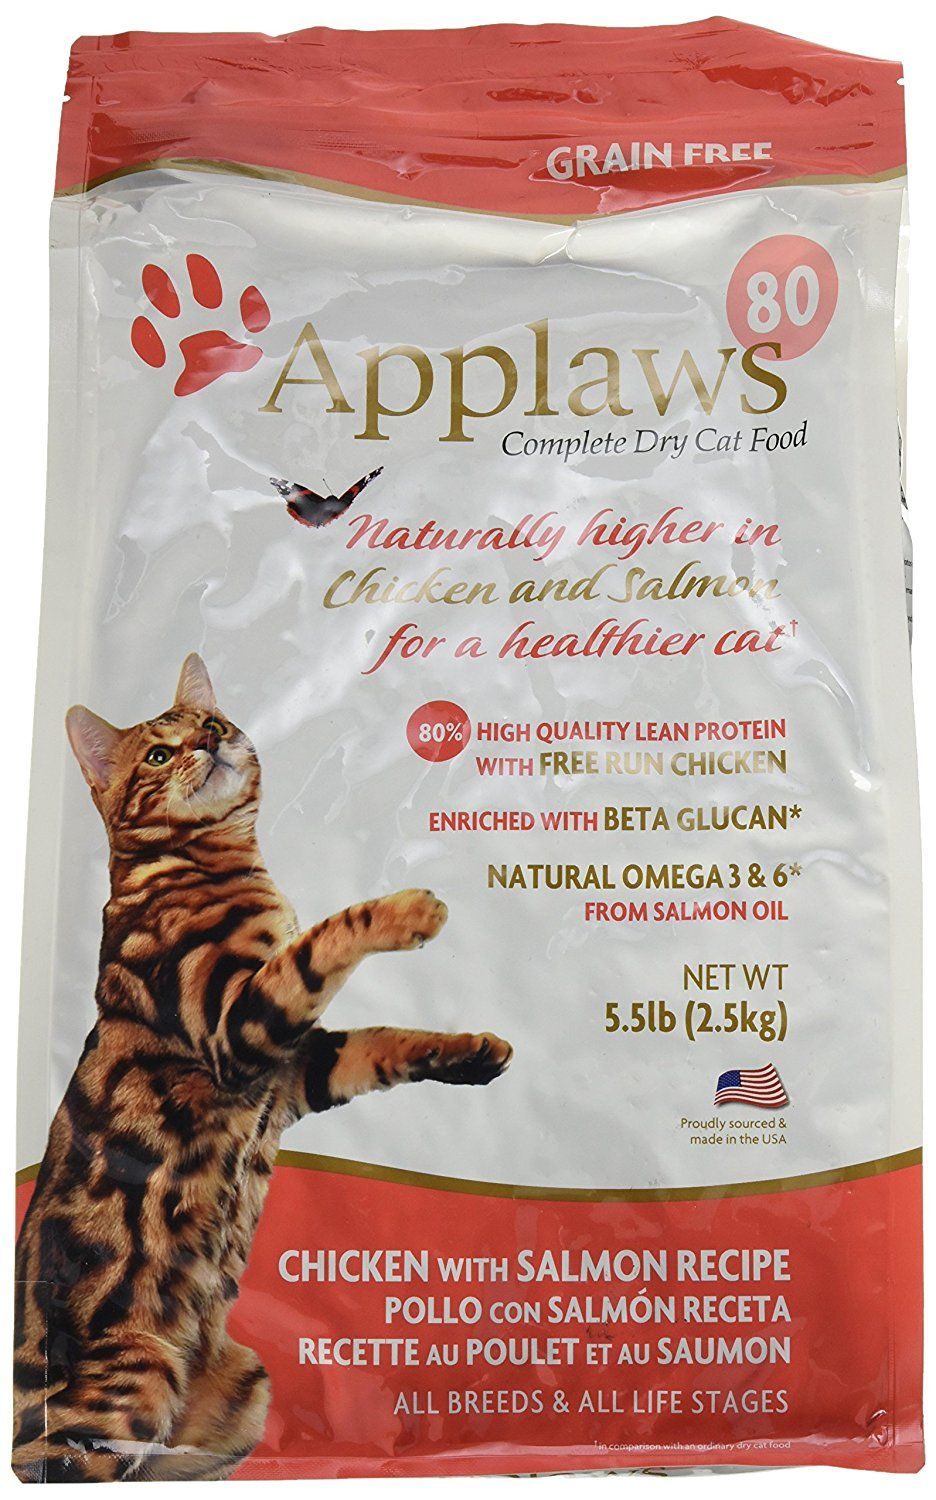 Applaws Grain Free Salmon Dry Cat Food Trust Me This Is Great Click The Image Cat Food Dry Cat Food Cat Food Cat Food Reviews